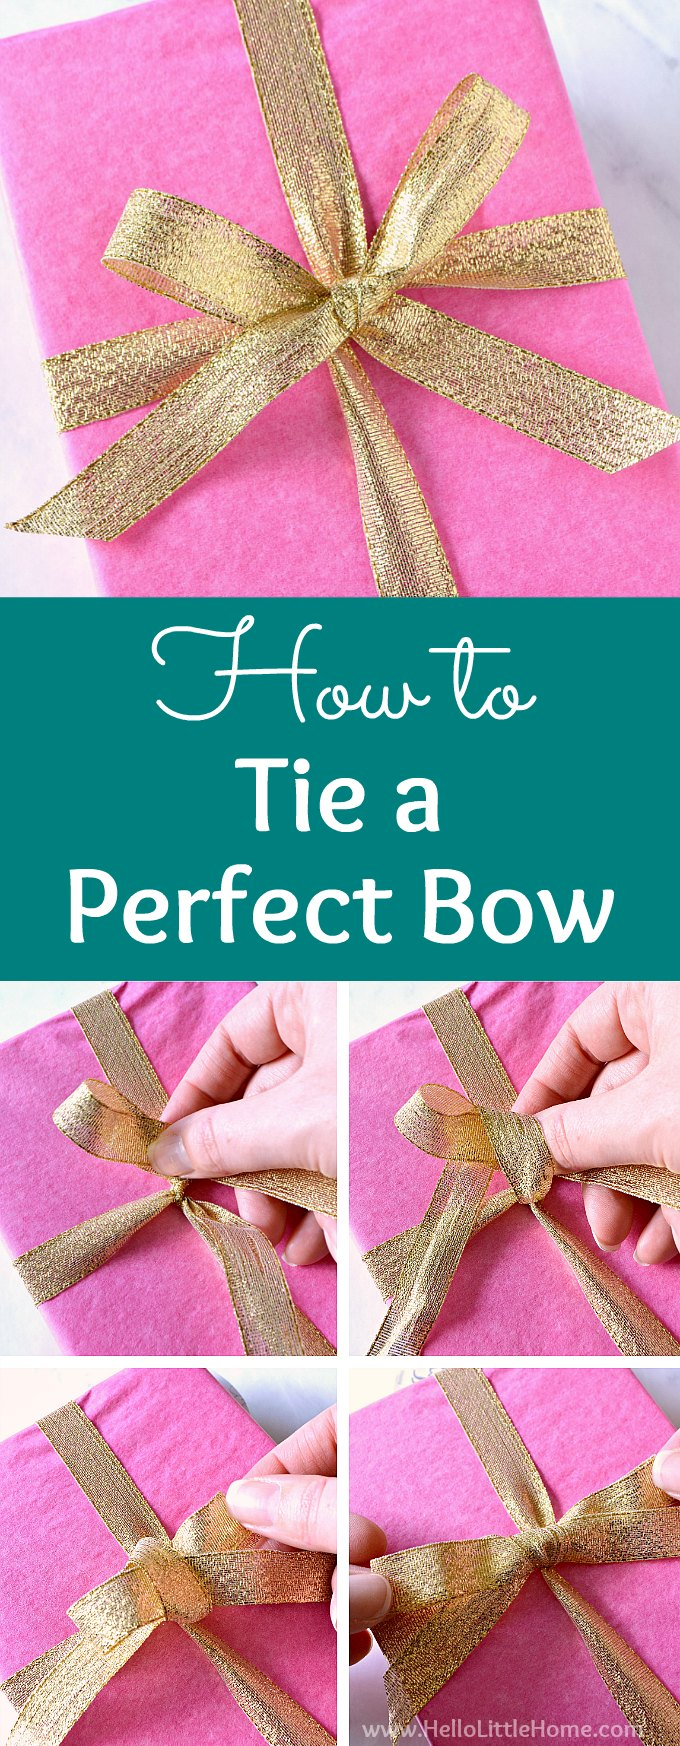 how to tie a perfect bow hello little home. Black Bedroom Furniture Sets. Home Design Ideas